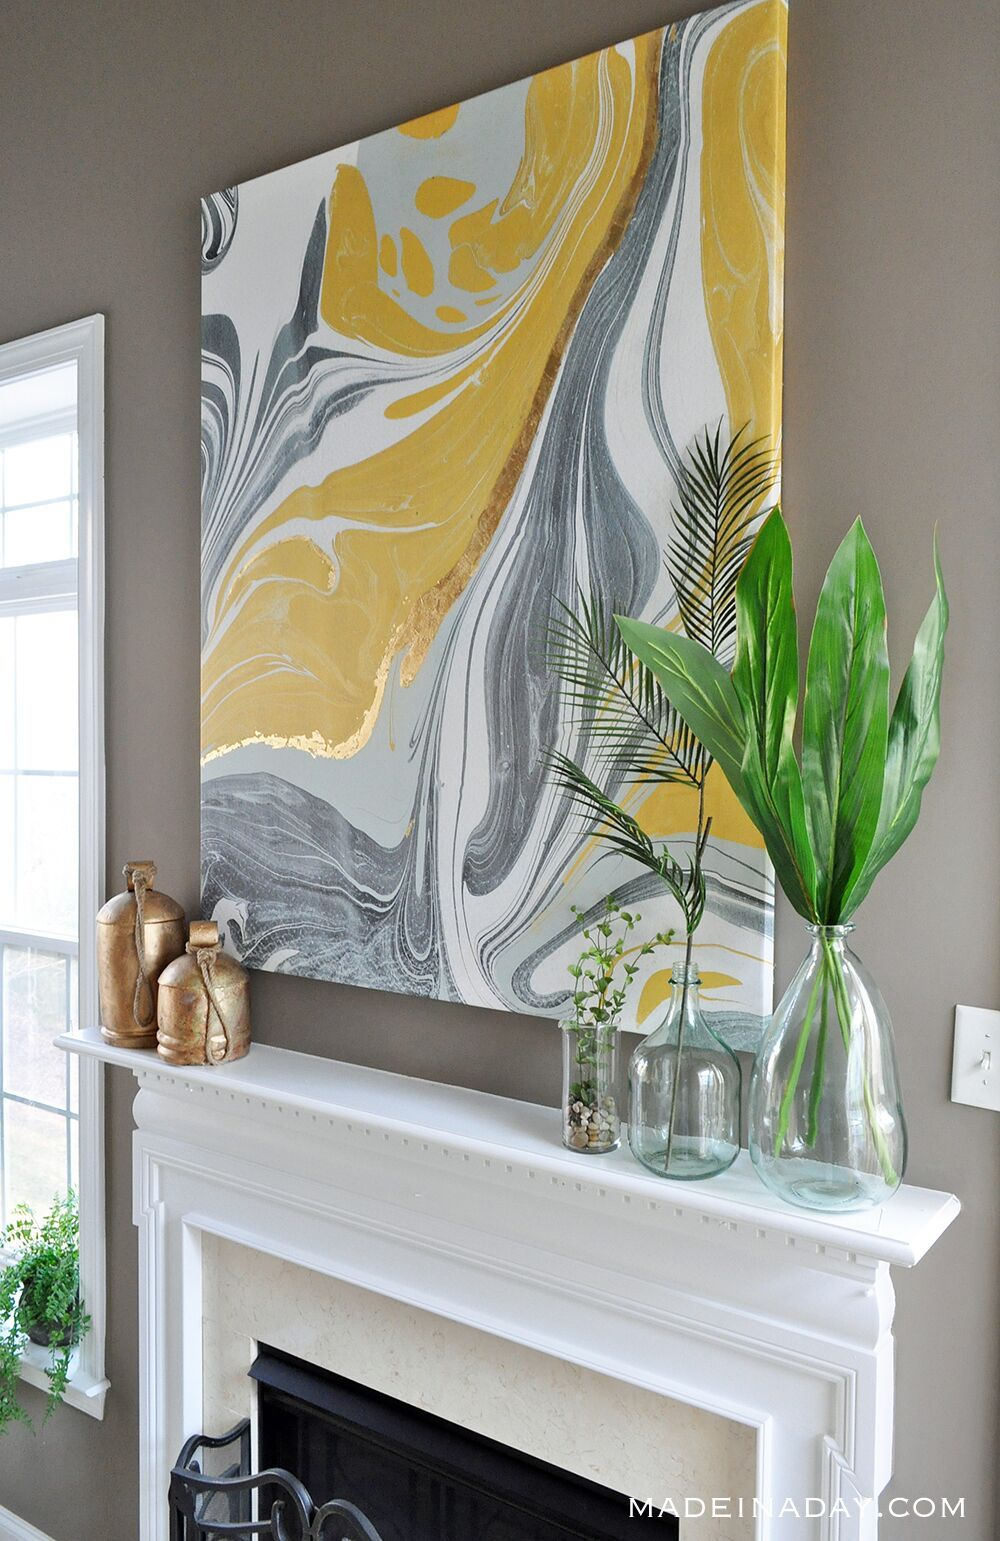 34 Diy Wall Art Ideas Homemade Wall Art Painting Projects